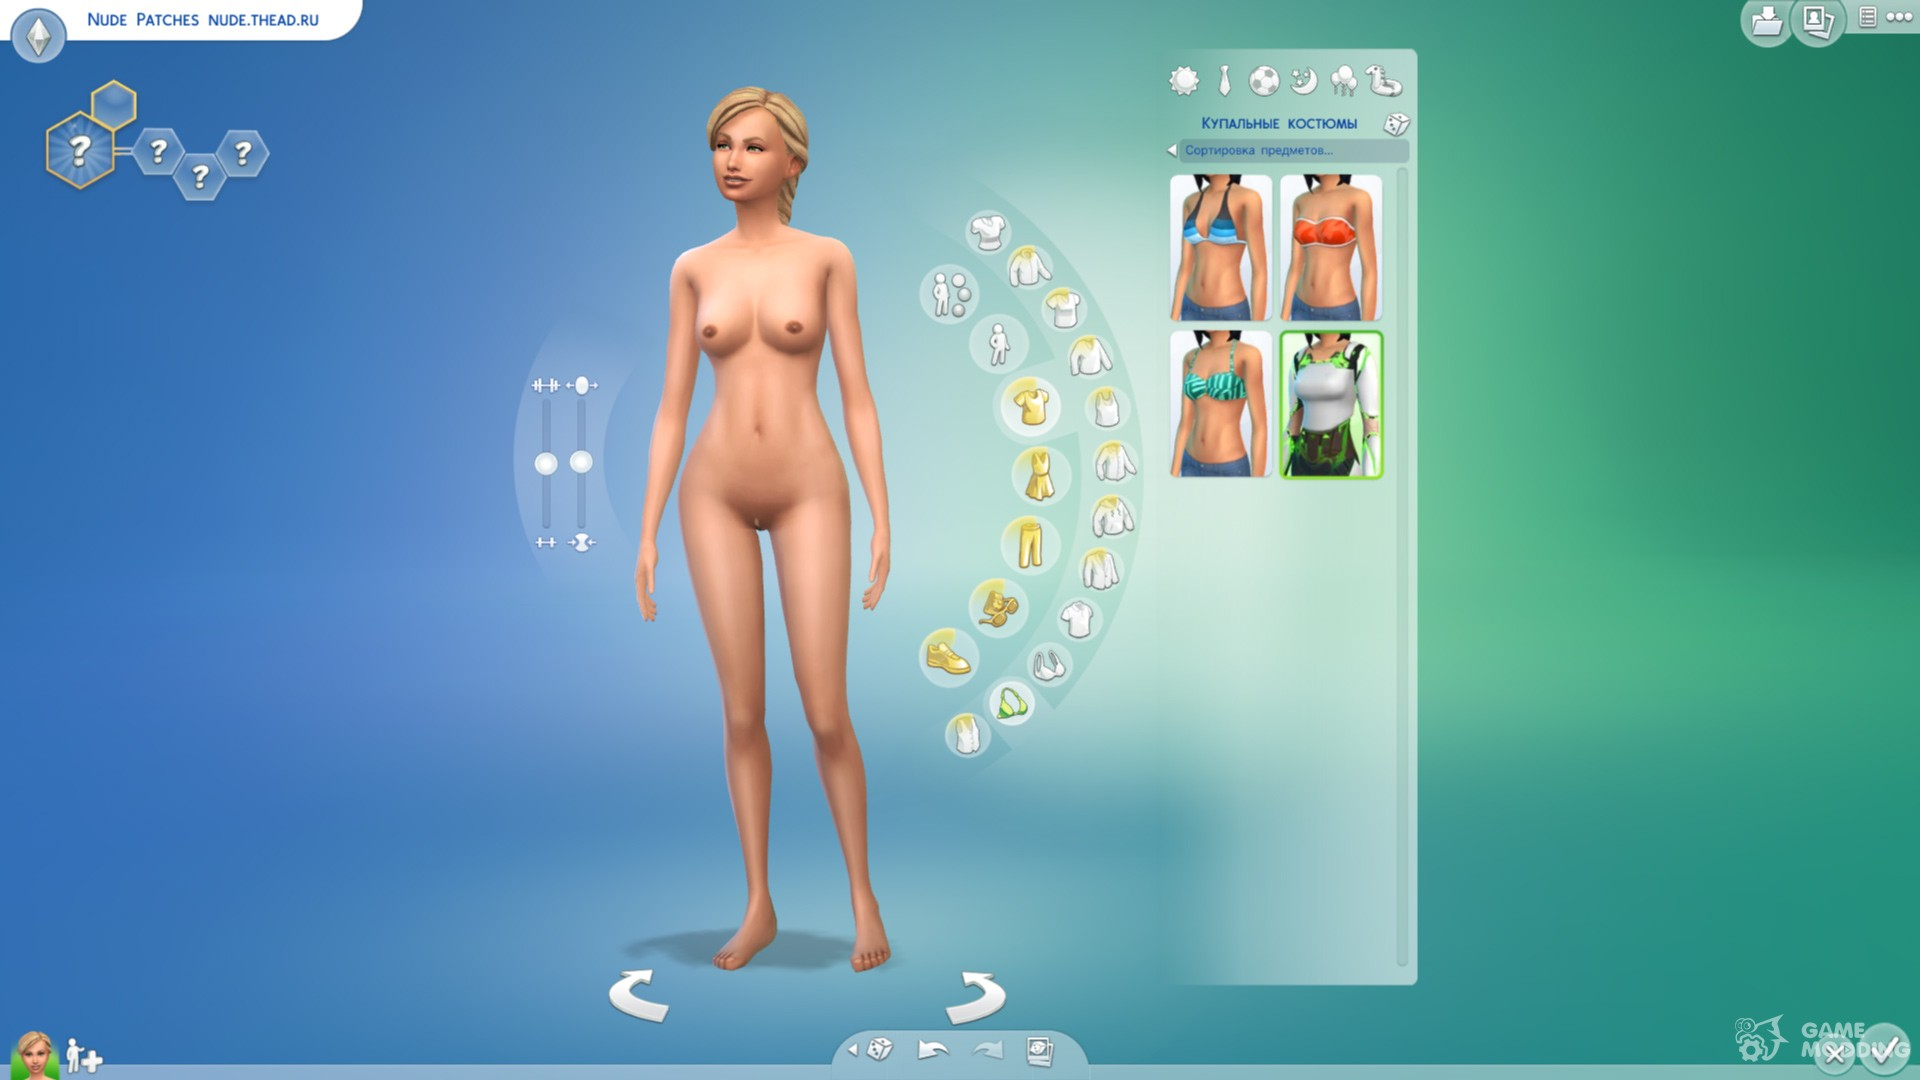 Nude mod for sims hentai videos